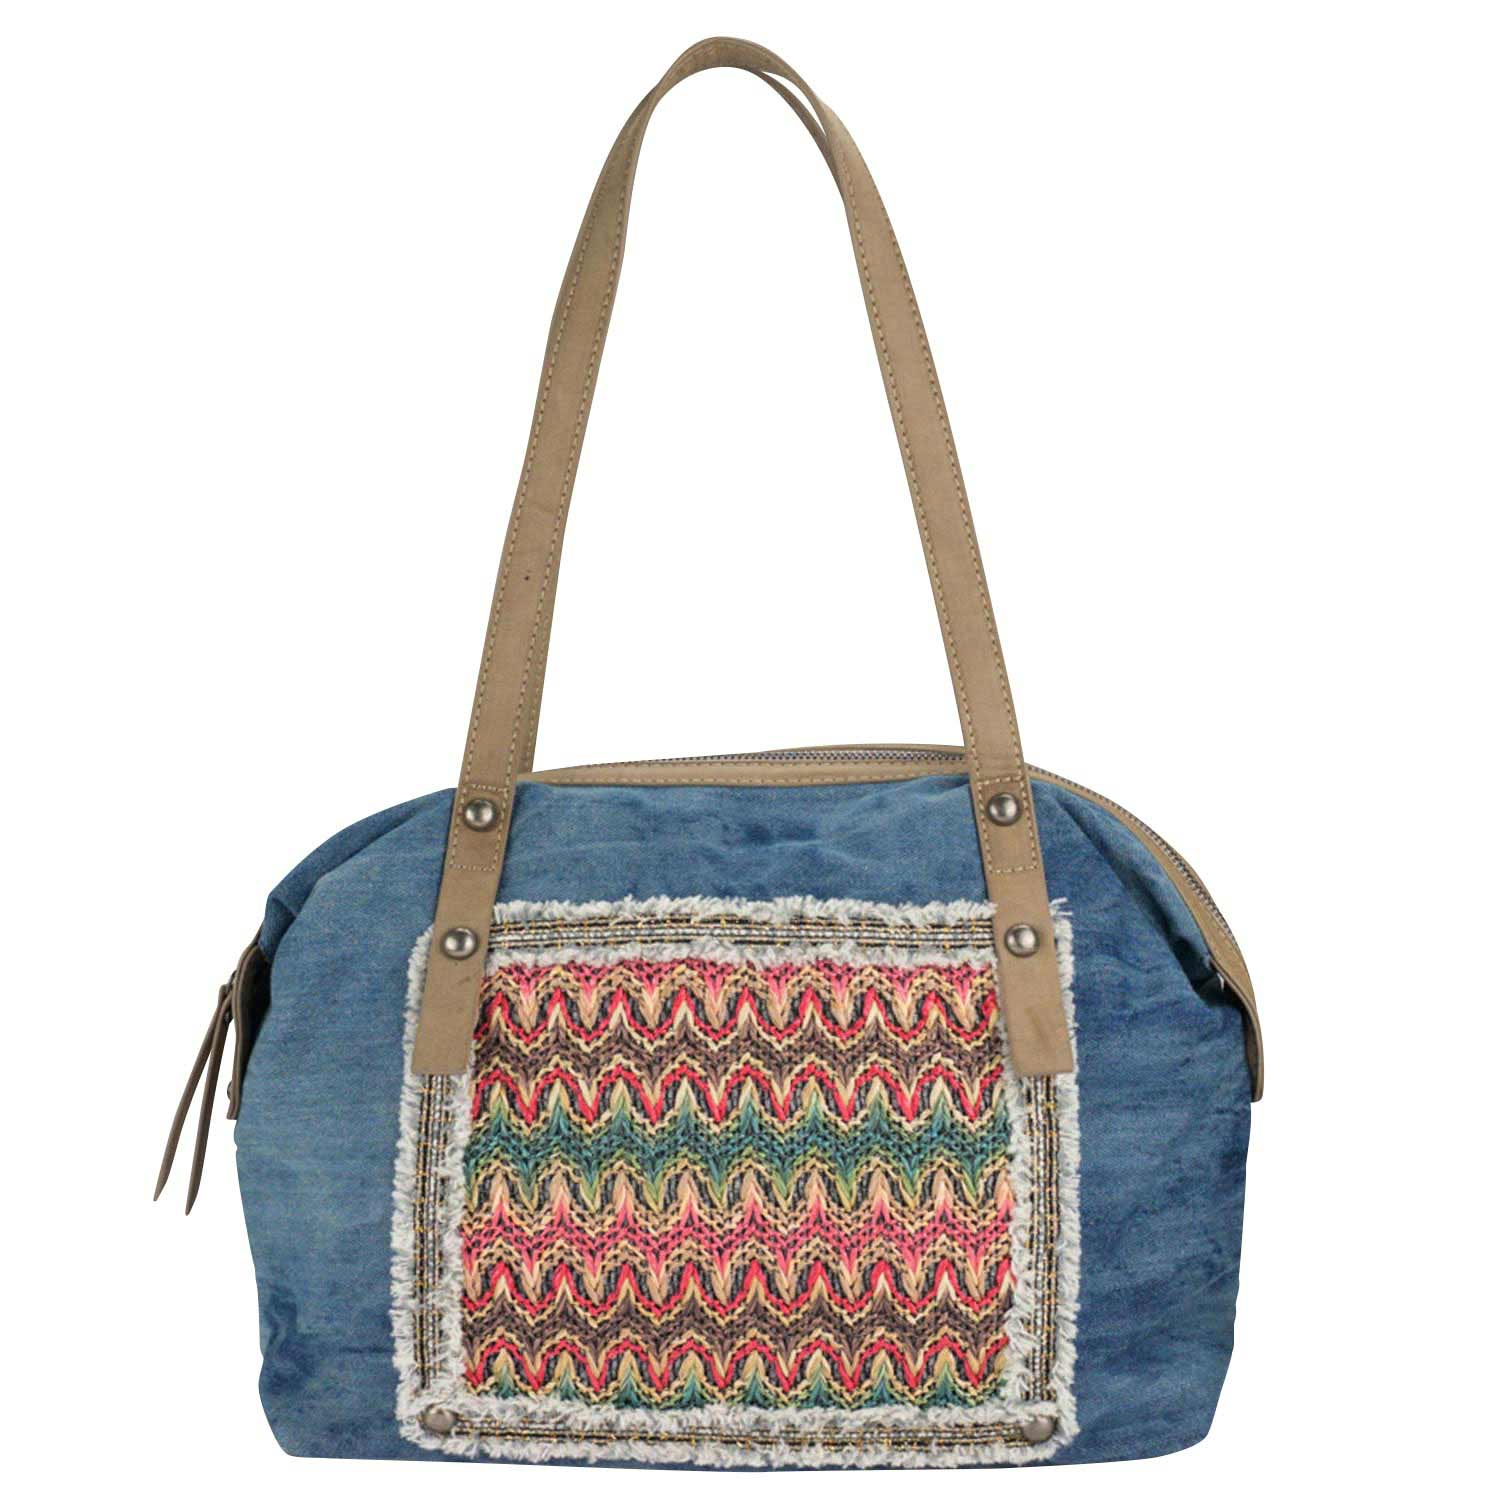 Louiz & Lou Jeans Kiss Handtasche Denim 2262-65